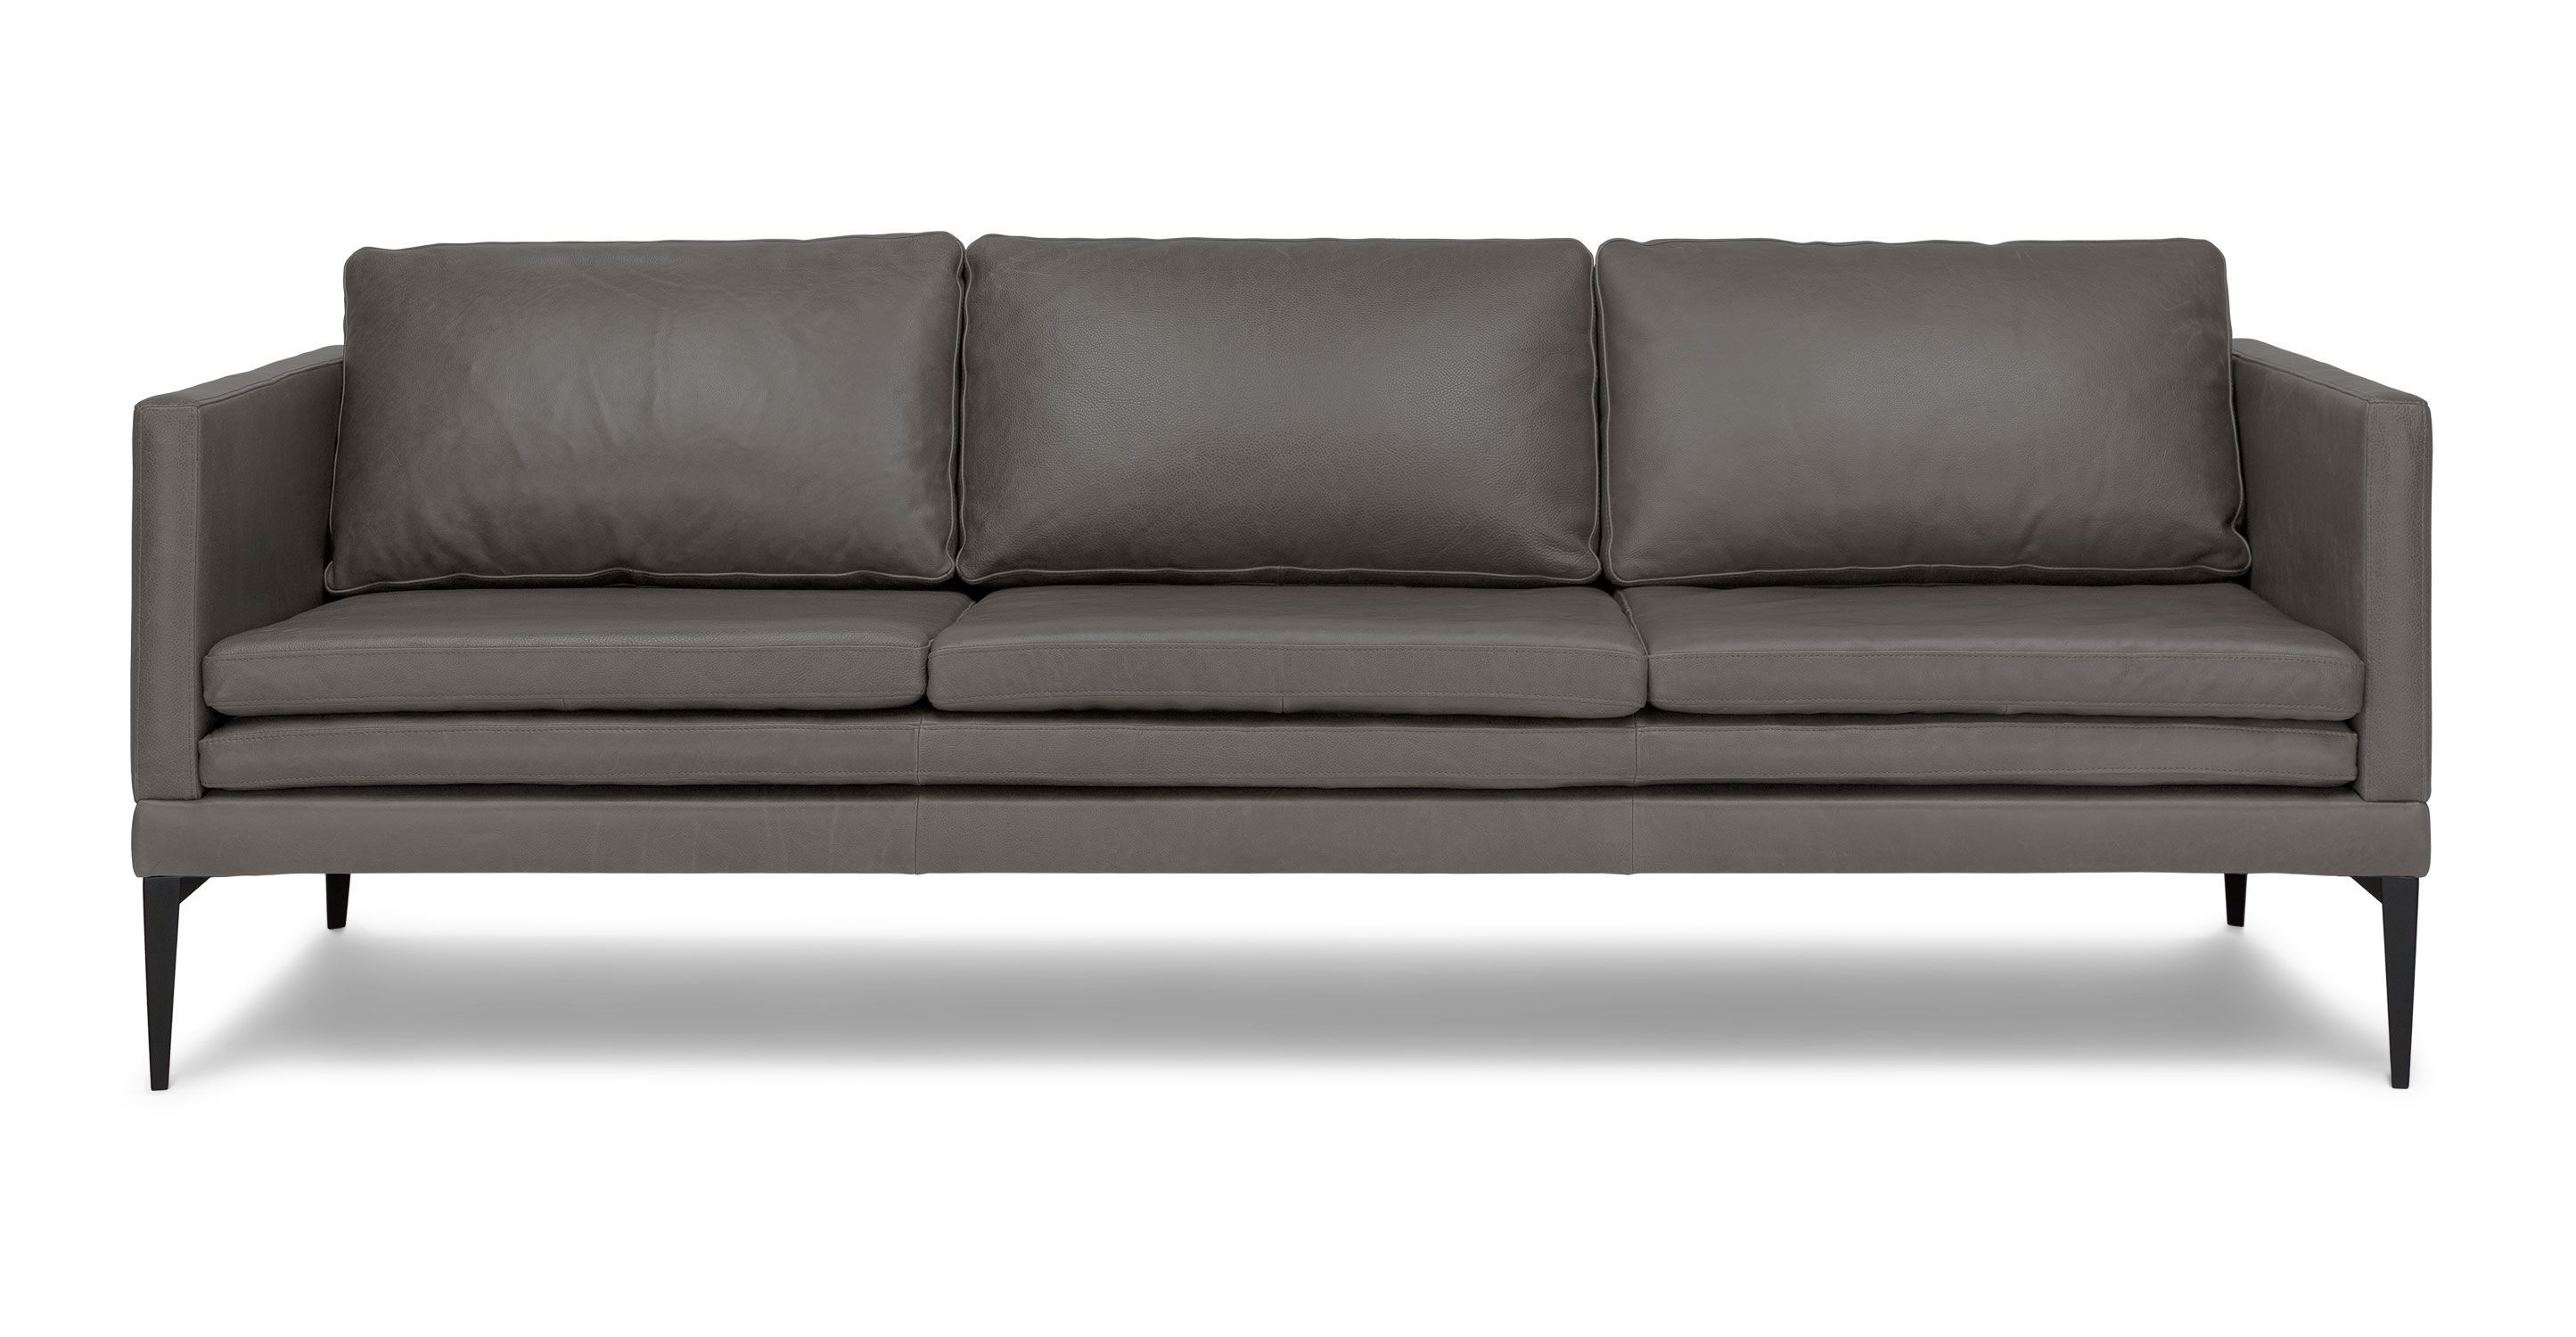 gray leather sofa with metal legs  article triplo contemporary furniture. gray leather sofa with metal legs  article triplo contemporary